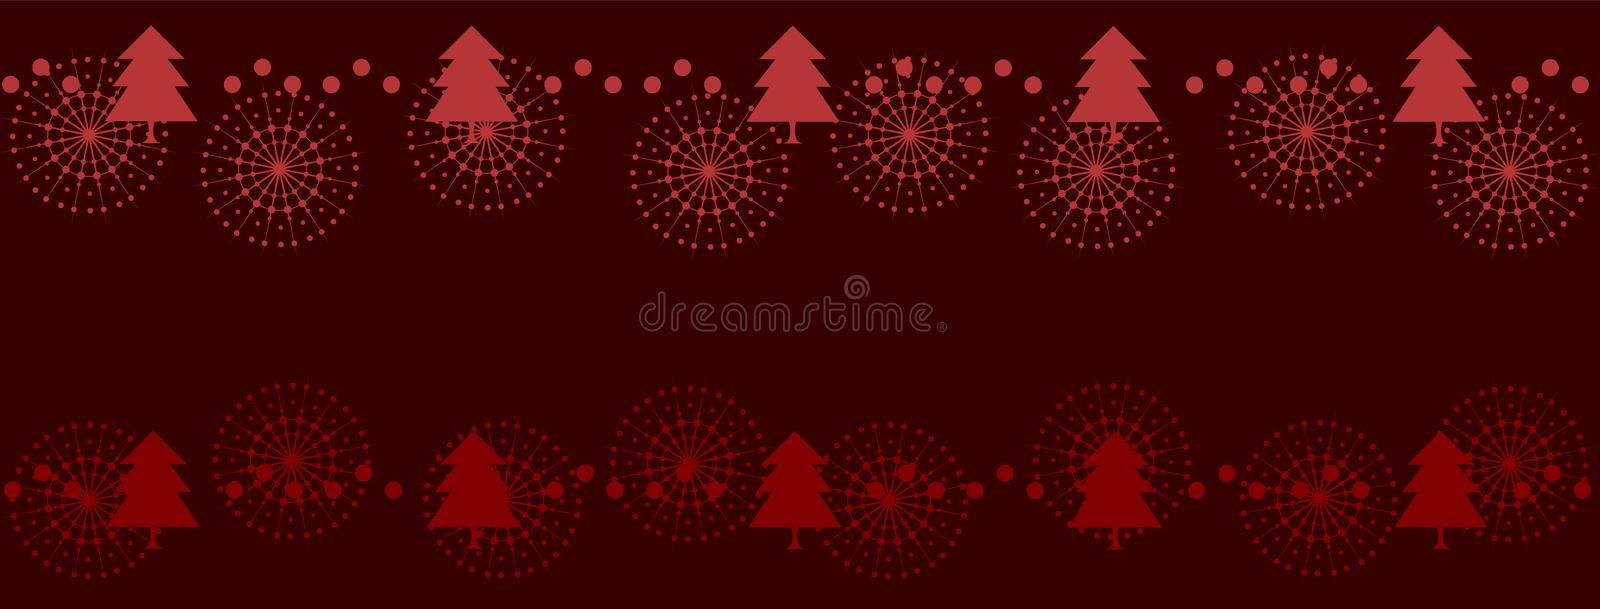 Elegant red Christmas design with trees and snowflakes. Festive Merry Christmas banner. royalty free illustration